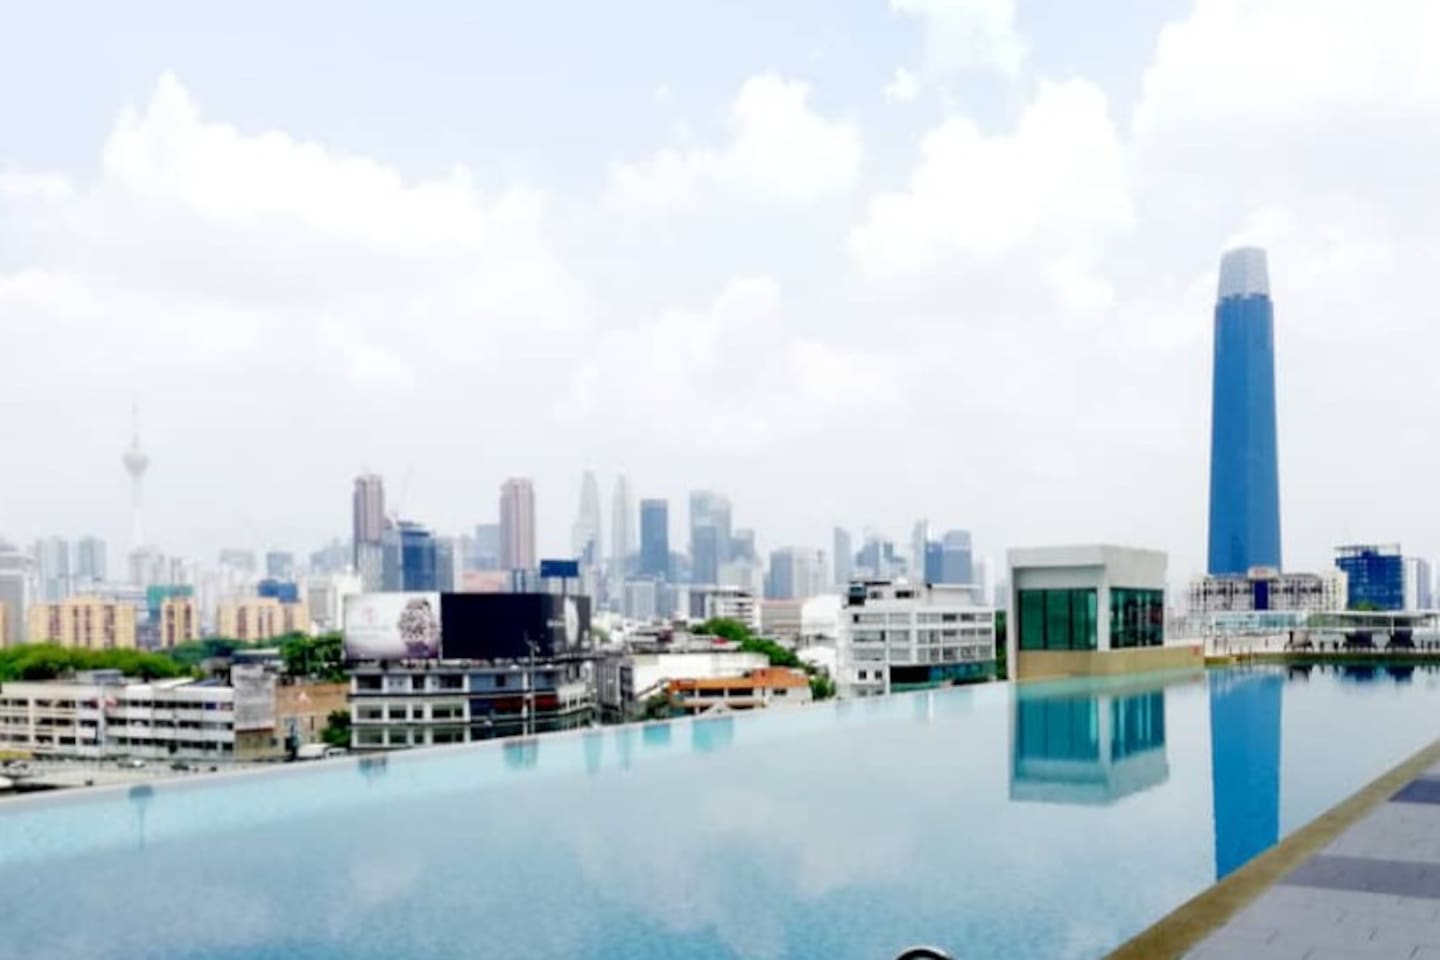 Infinity Pool & Gym Room with 4 perfect view~ KL tower, KLCC, TRX & Pavilion KL